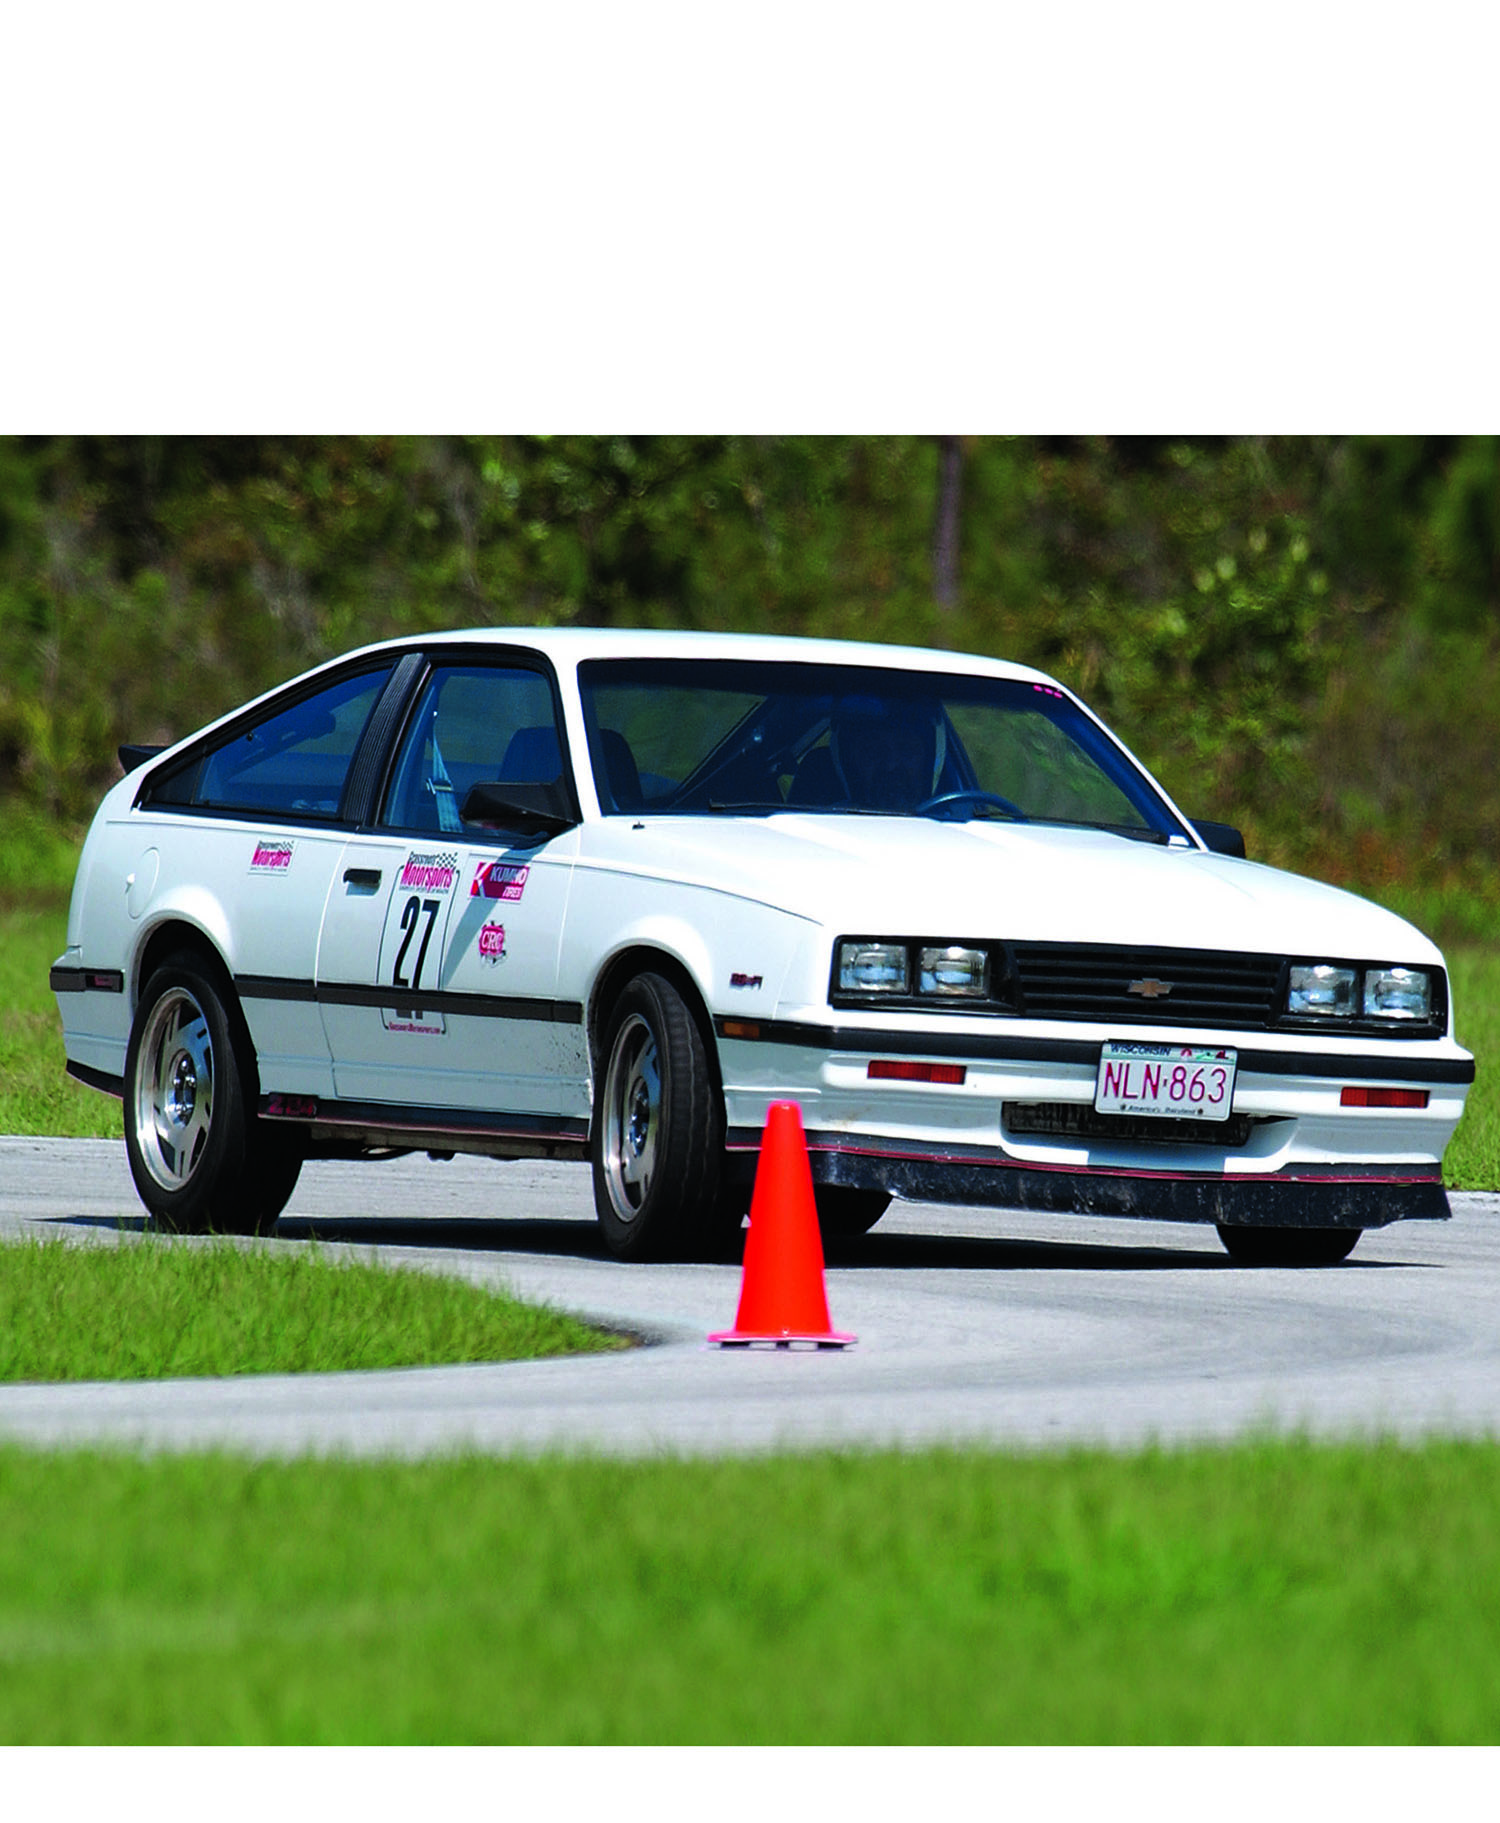 hight resolution of great moments in 2000 challenge history 87 chevy cavalier z24